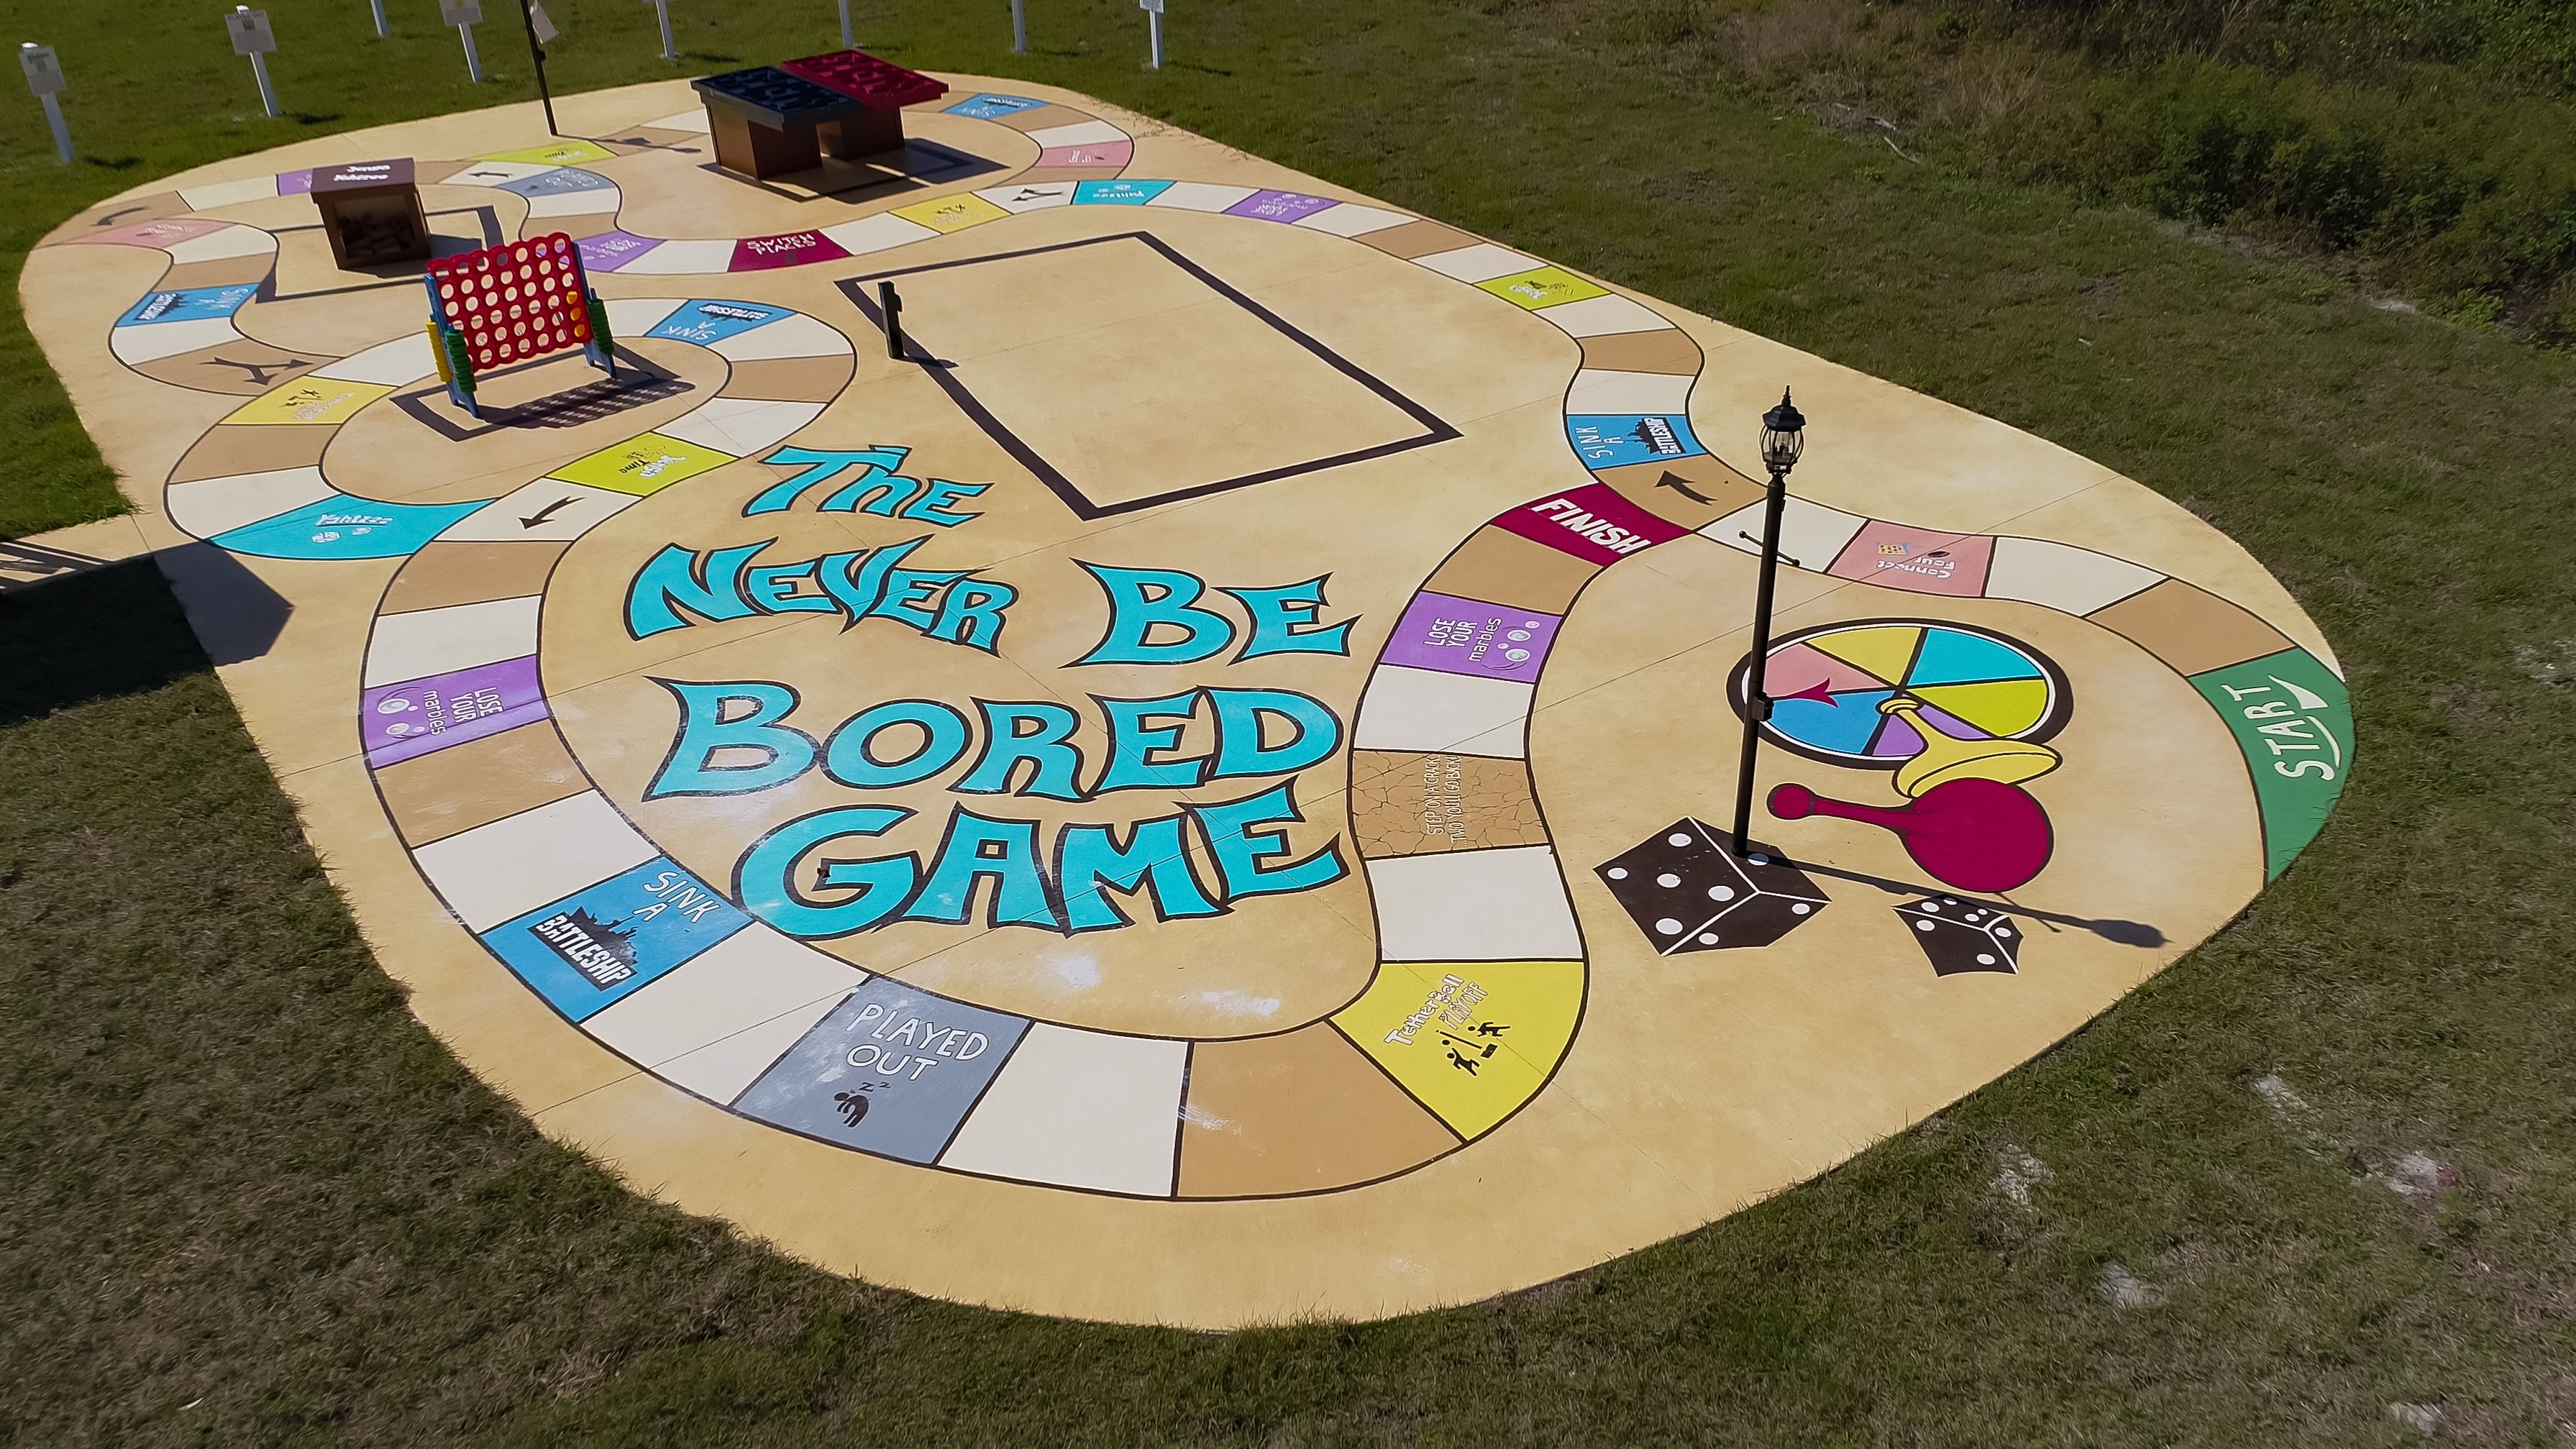 The giant neverbeBORED game at Great Escape Lakeside